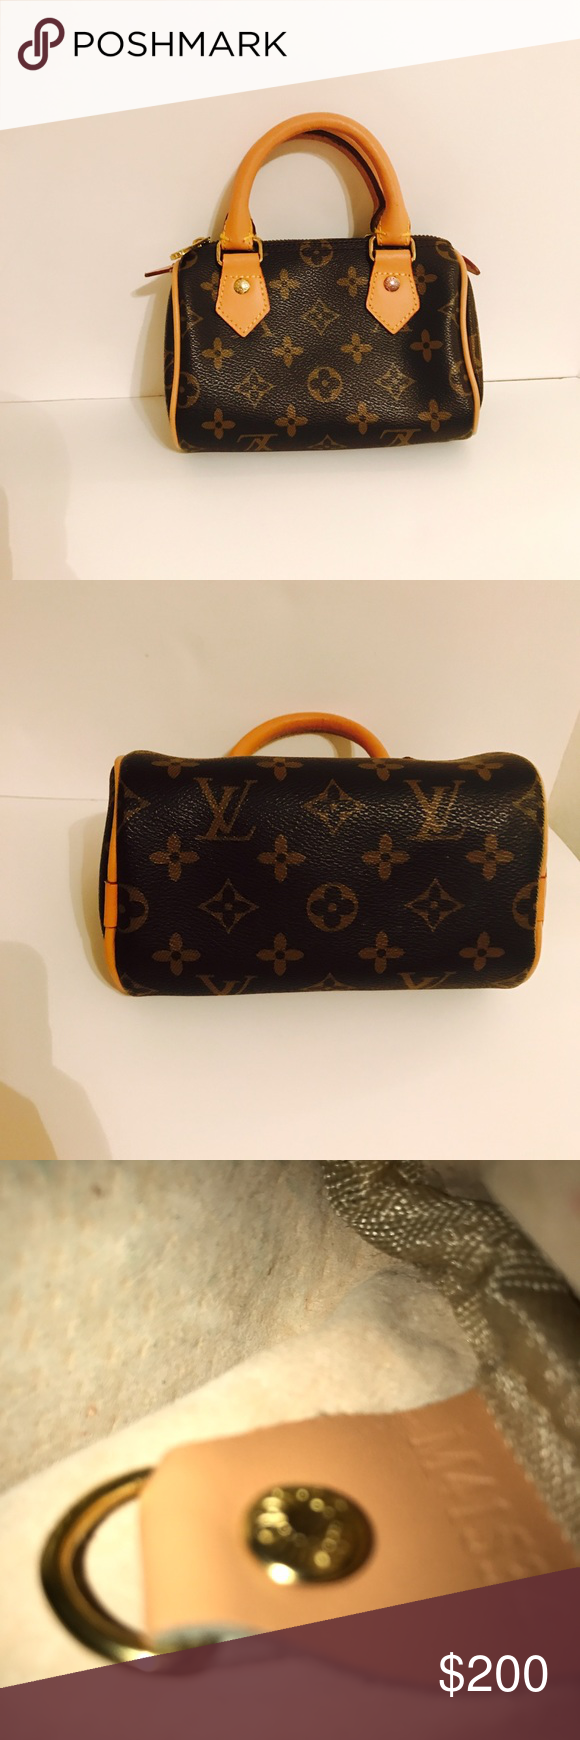 """Cute mini Louis Vuitton bag LV mini bag Measures: 6.5"""" Length, 3"""" Width, 5"""" Height  Great bag for you or even your daughter to wear and match with you !! Has a few imperfections shown above in photos. A few all stains and pen marks inside but nothing too much. Both Zippers work perfect. Made in France. Date code in photo above. Got as a gift so no receipt and no dust bag sorry loves ! Open to reasonable offers only through offer button. Will be happy to take any more requested photos. Thanks…"""